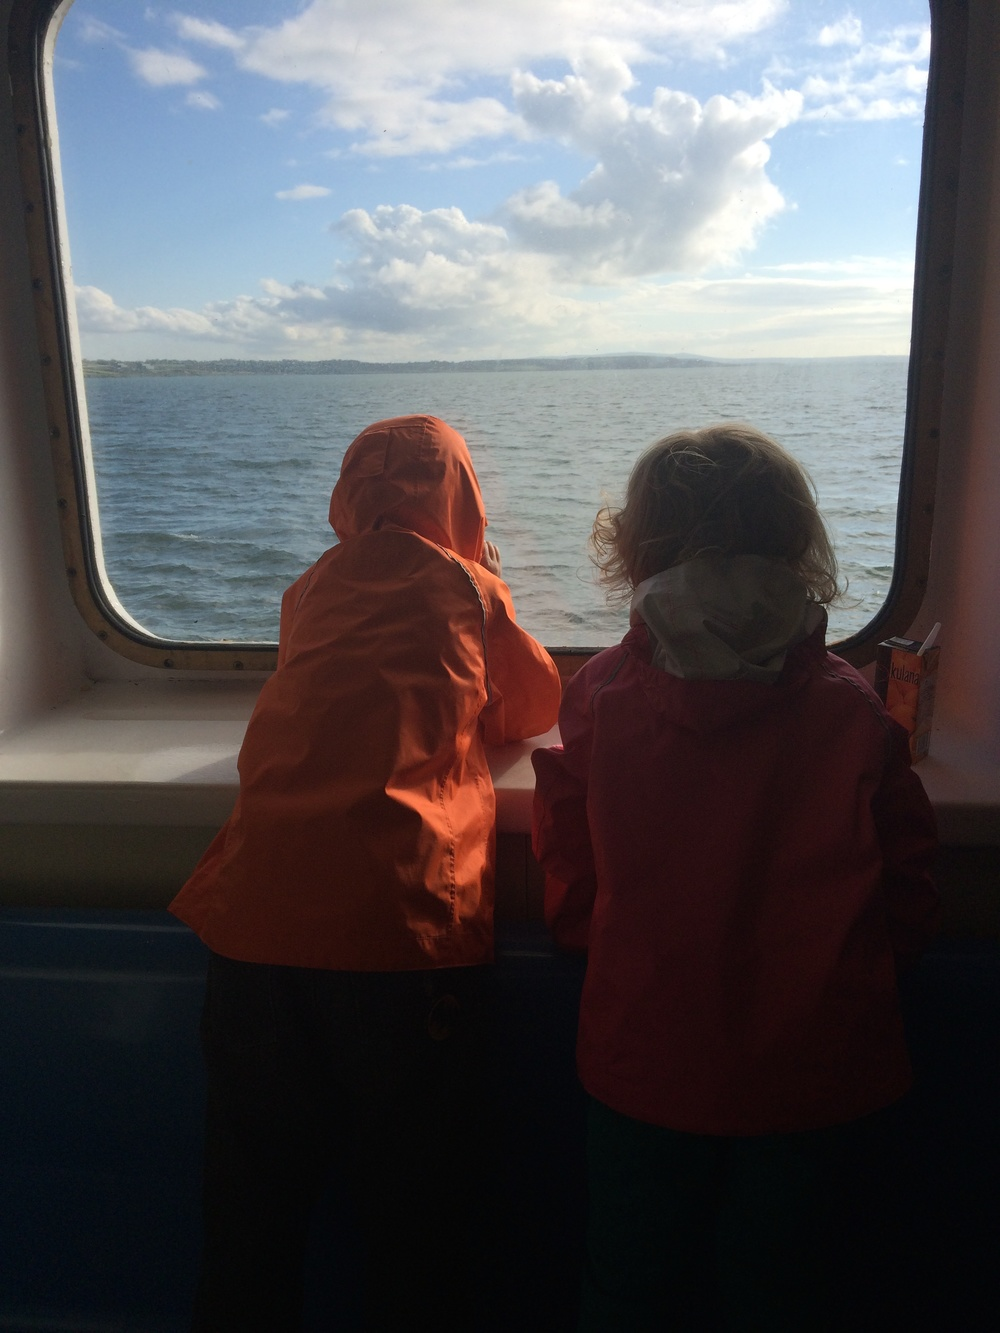 The kids looking at the Shannon River from the ferry